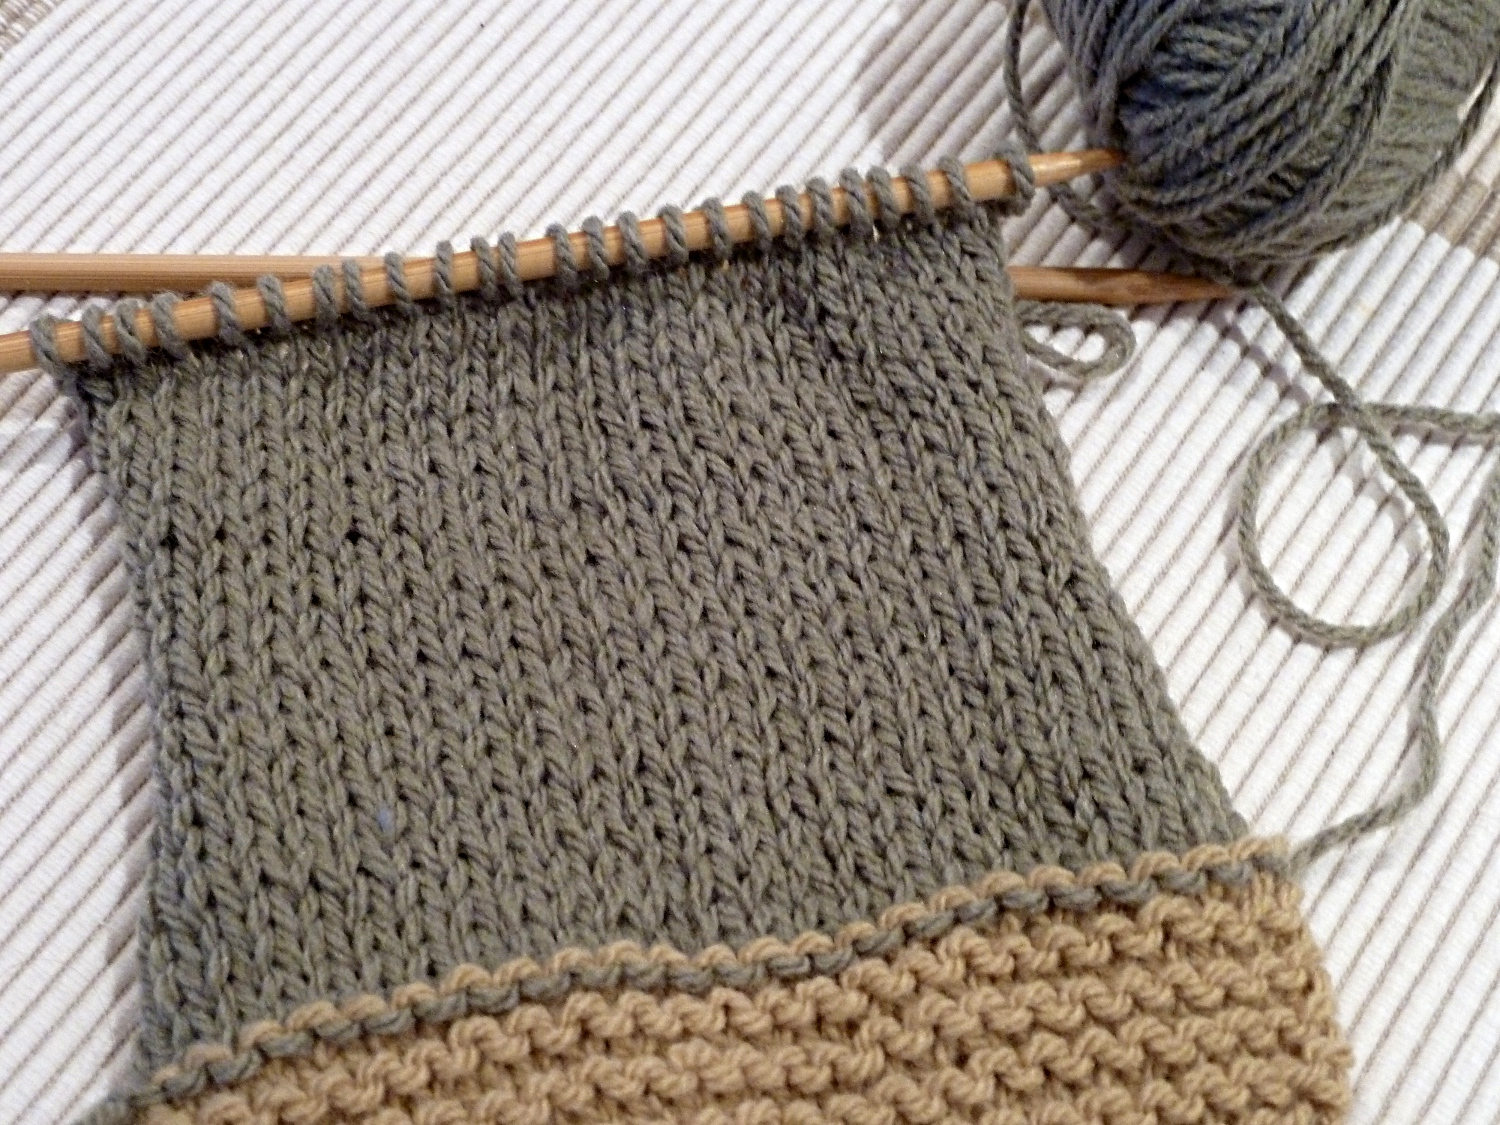 Knitting Extra Stitch Each Row : Knitting for beginners #s 5 & 6 - A Stitching Odyssey